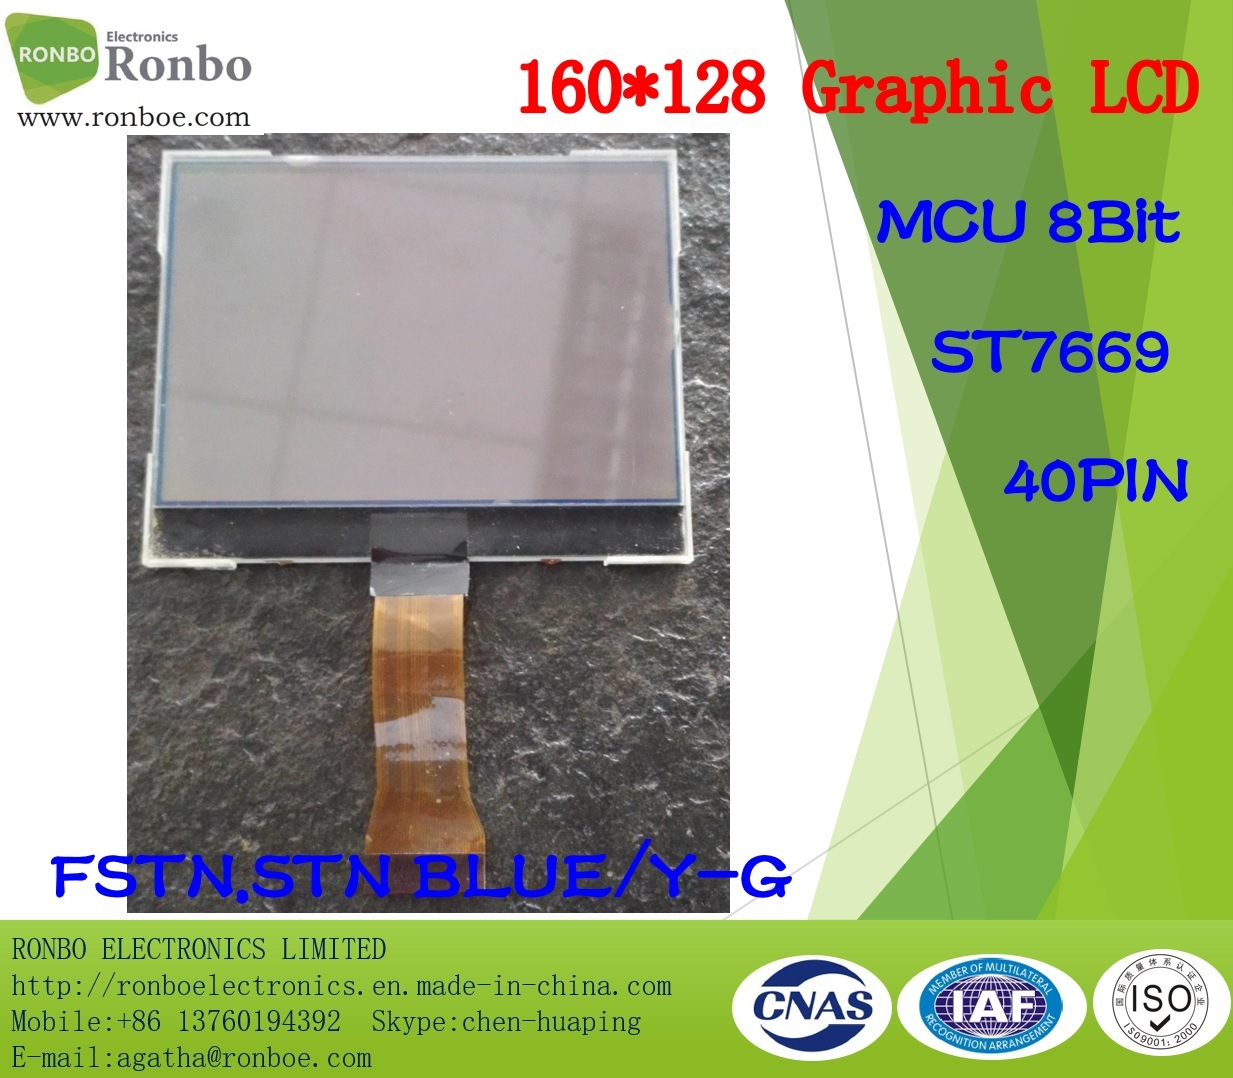 160X128 Cog Graphic LCD Monitor, St7669, 40pin for POS, Doorbell, Medical, Cars